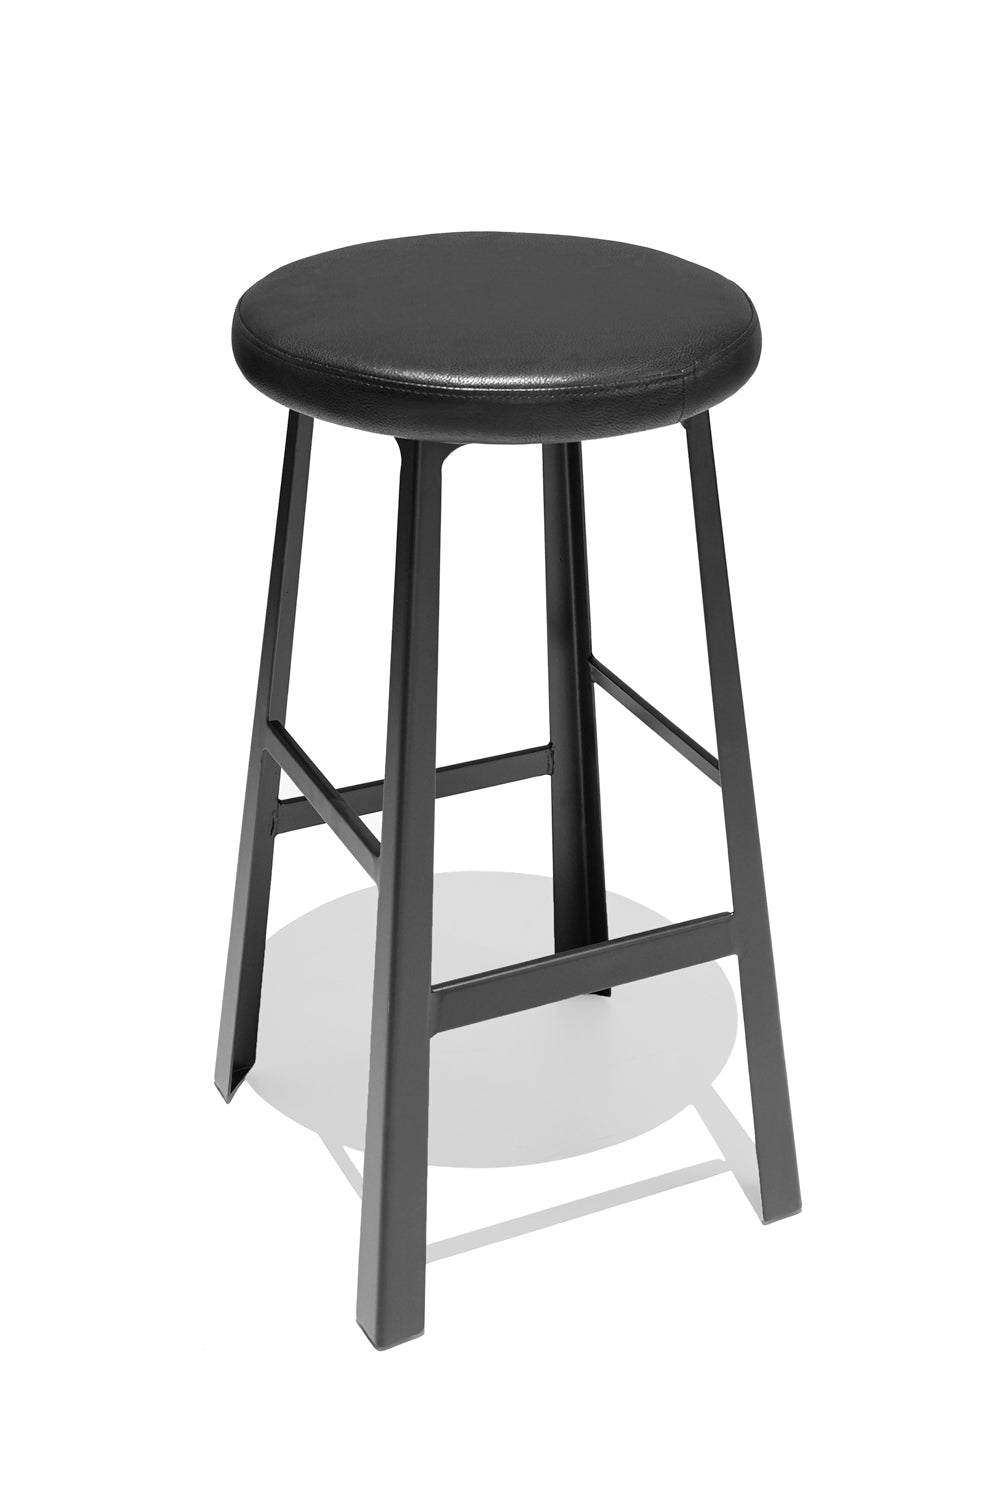 SKETCH bar stool - upholstered